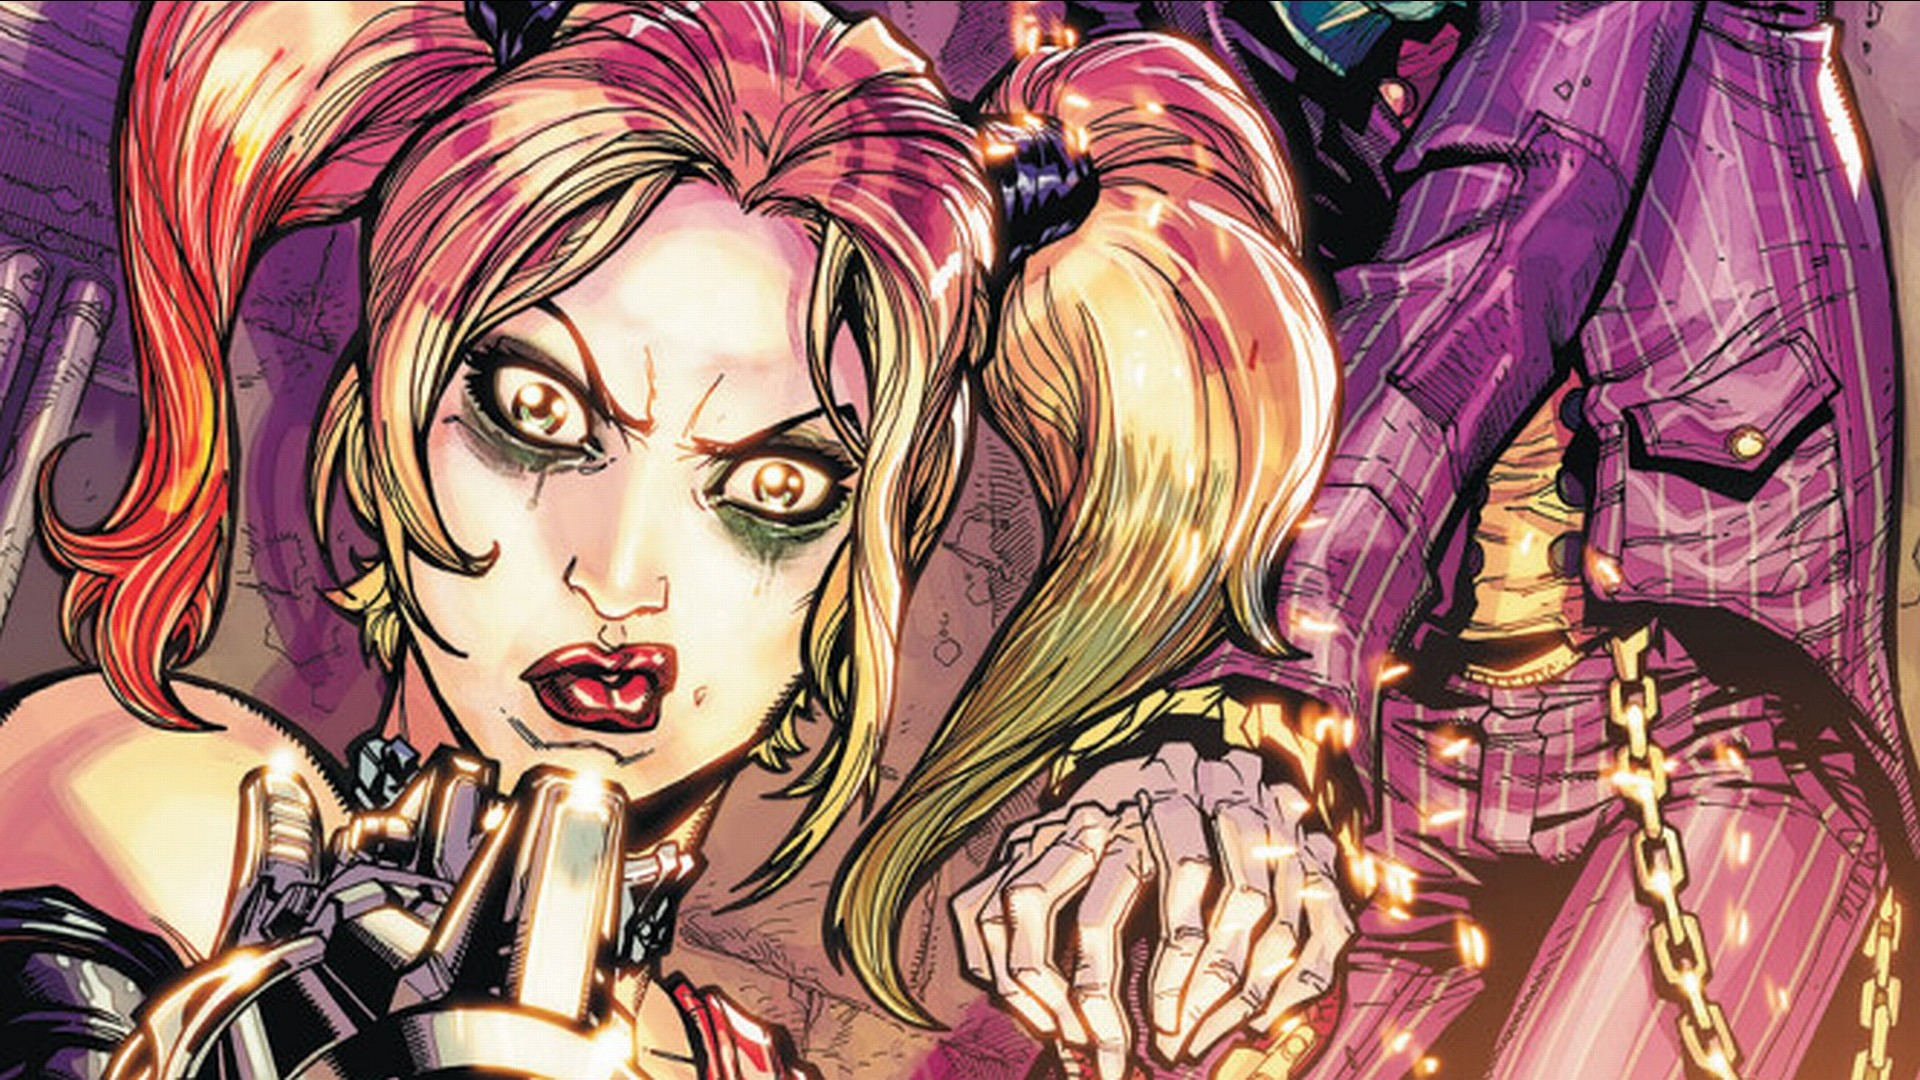 353 Harley Quinn HD Wallpapers | Backgrounds – Wallpaper Abyss – Page 2